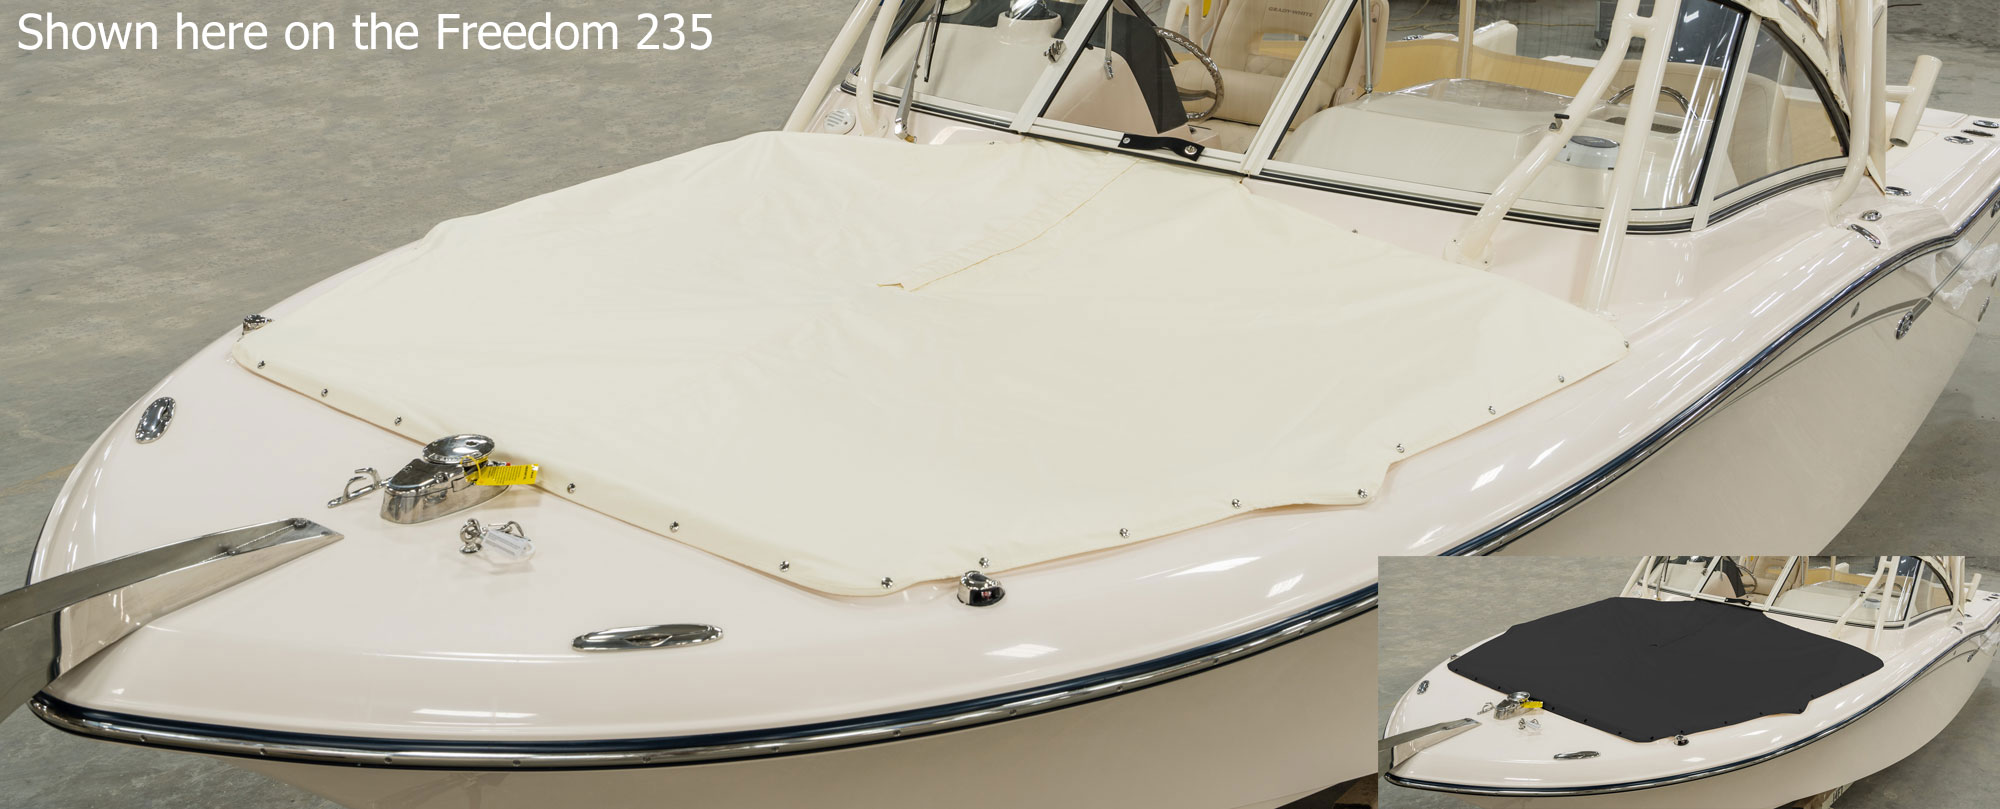 Grady-White Freedom 255 25-foot dual console ivory bow cover